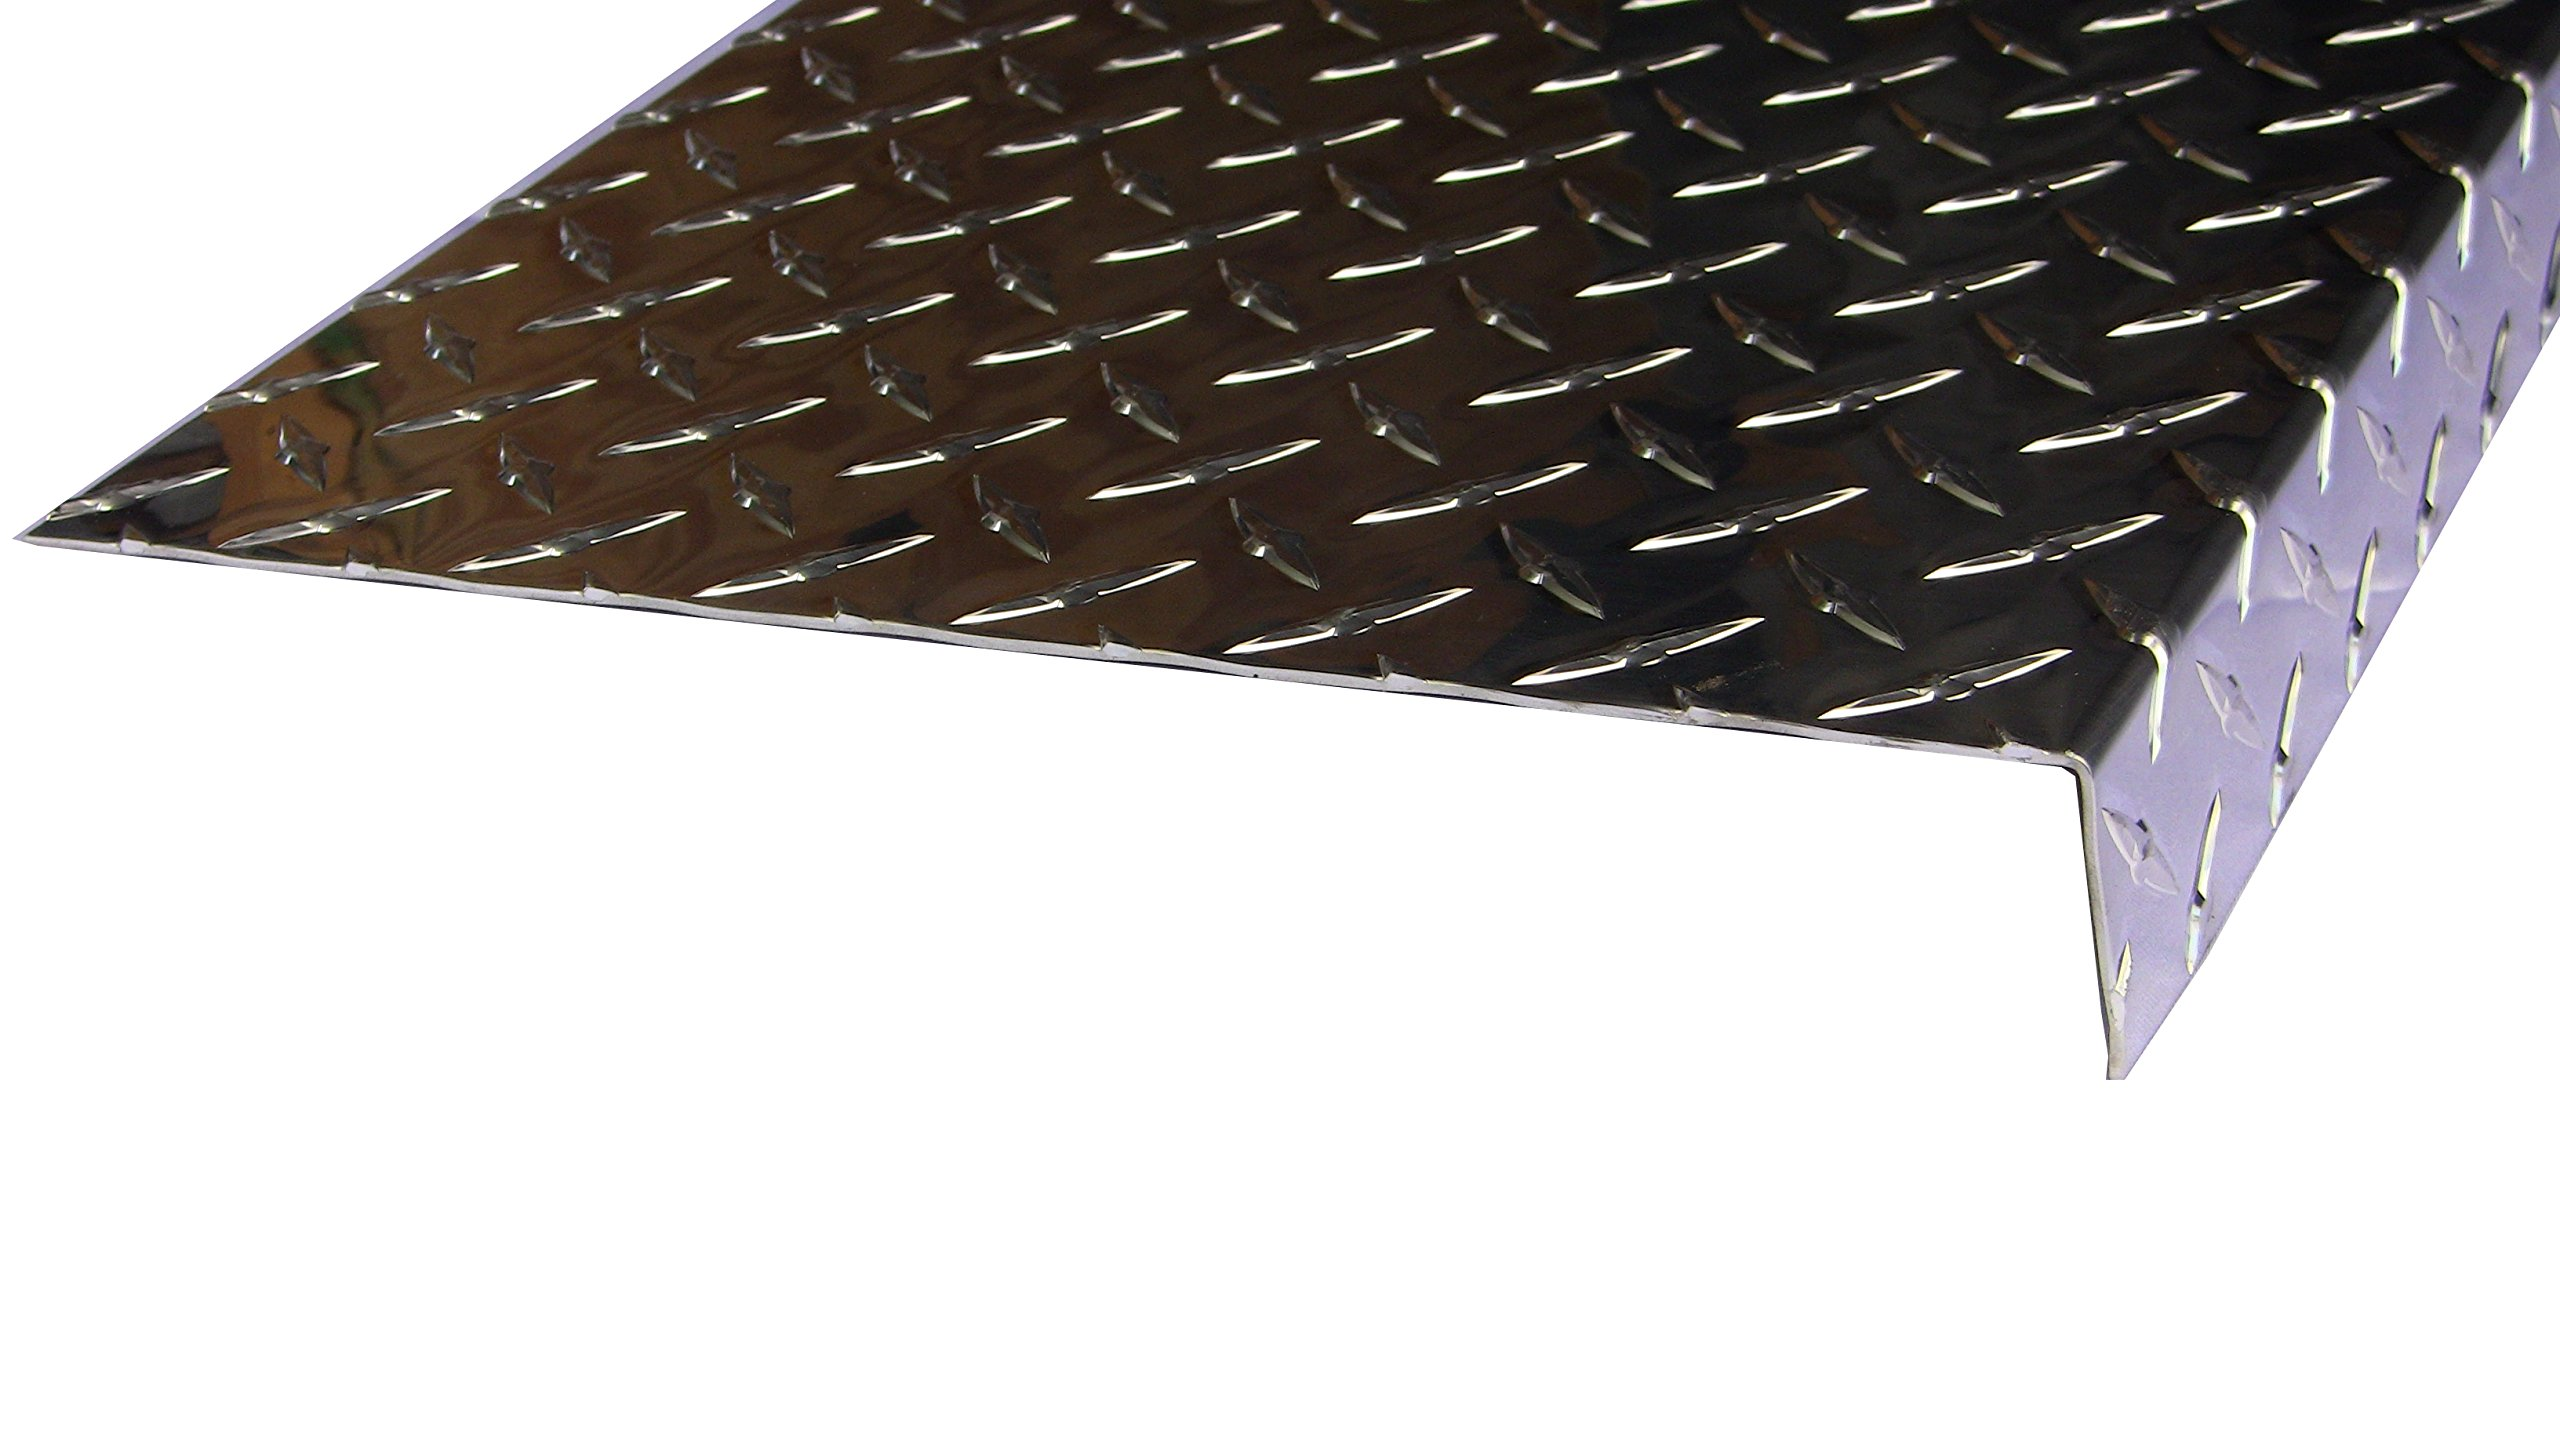 Aluminum Diamond Plate Door Threshold .062 x 1.5 x 10.88 x 36 in. w/out screws and holes | (1/16 x 1-1/2 x 10-7/8 x 36 in.) UAAC